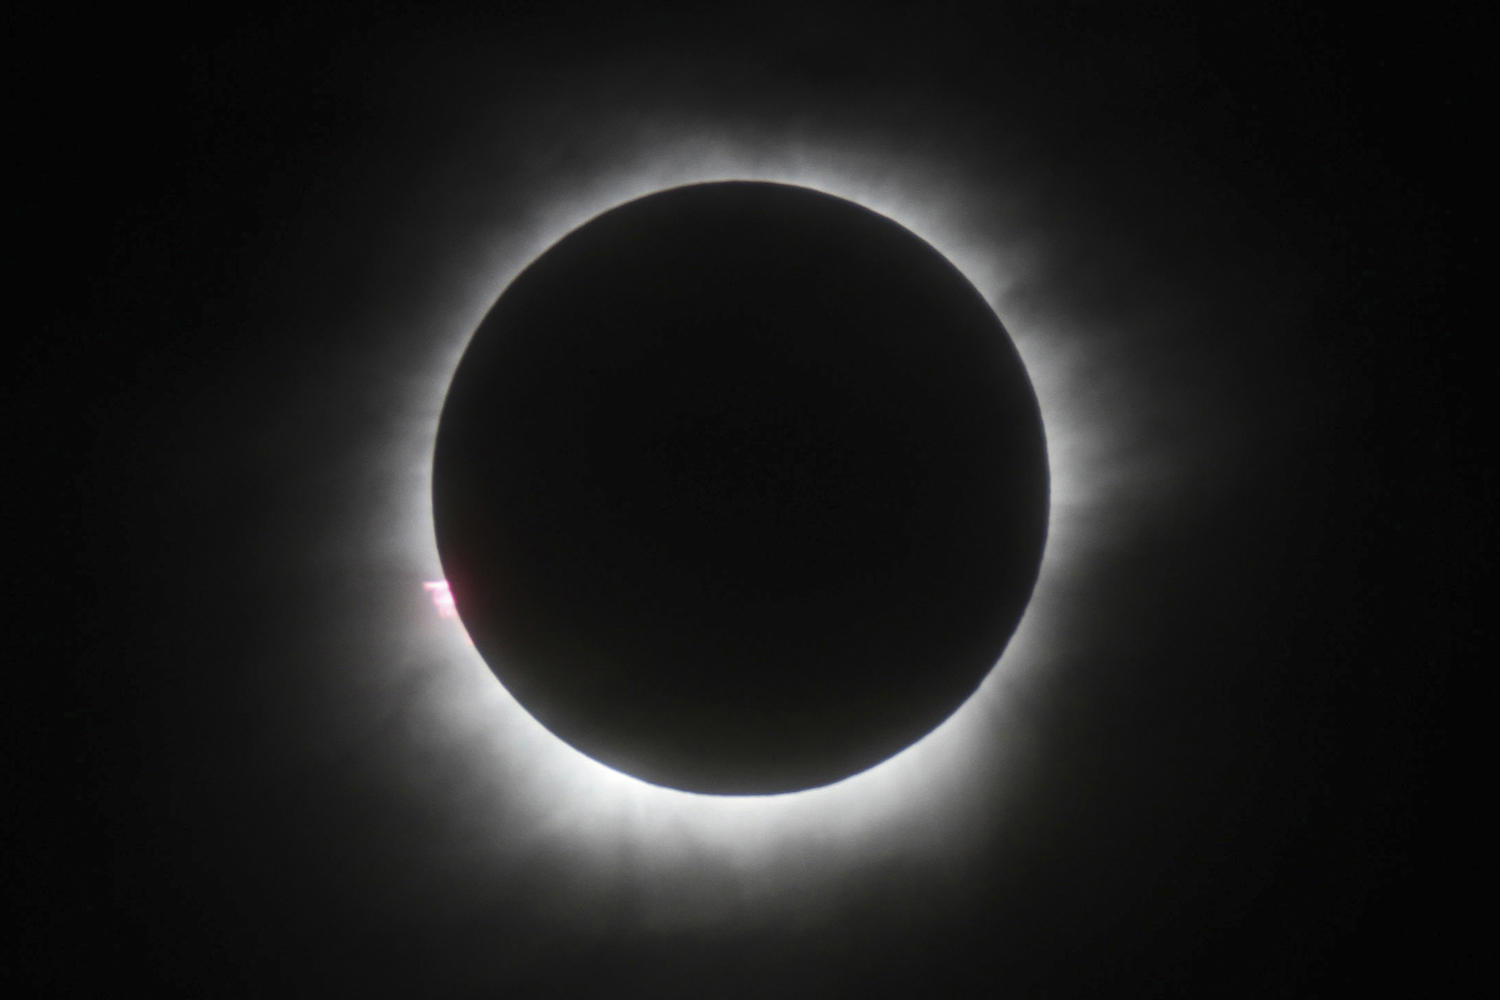 Adler Planetarium offers free admission on Monday for solar eclipse